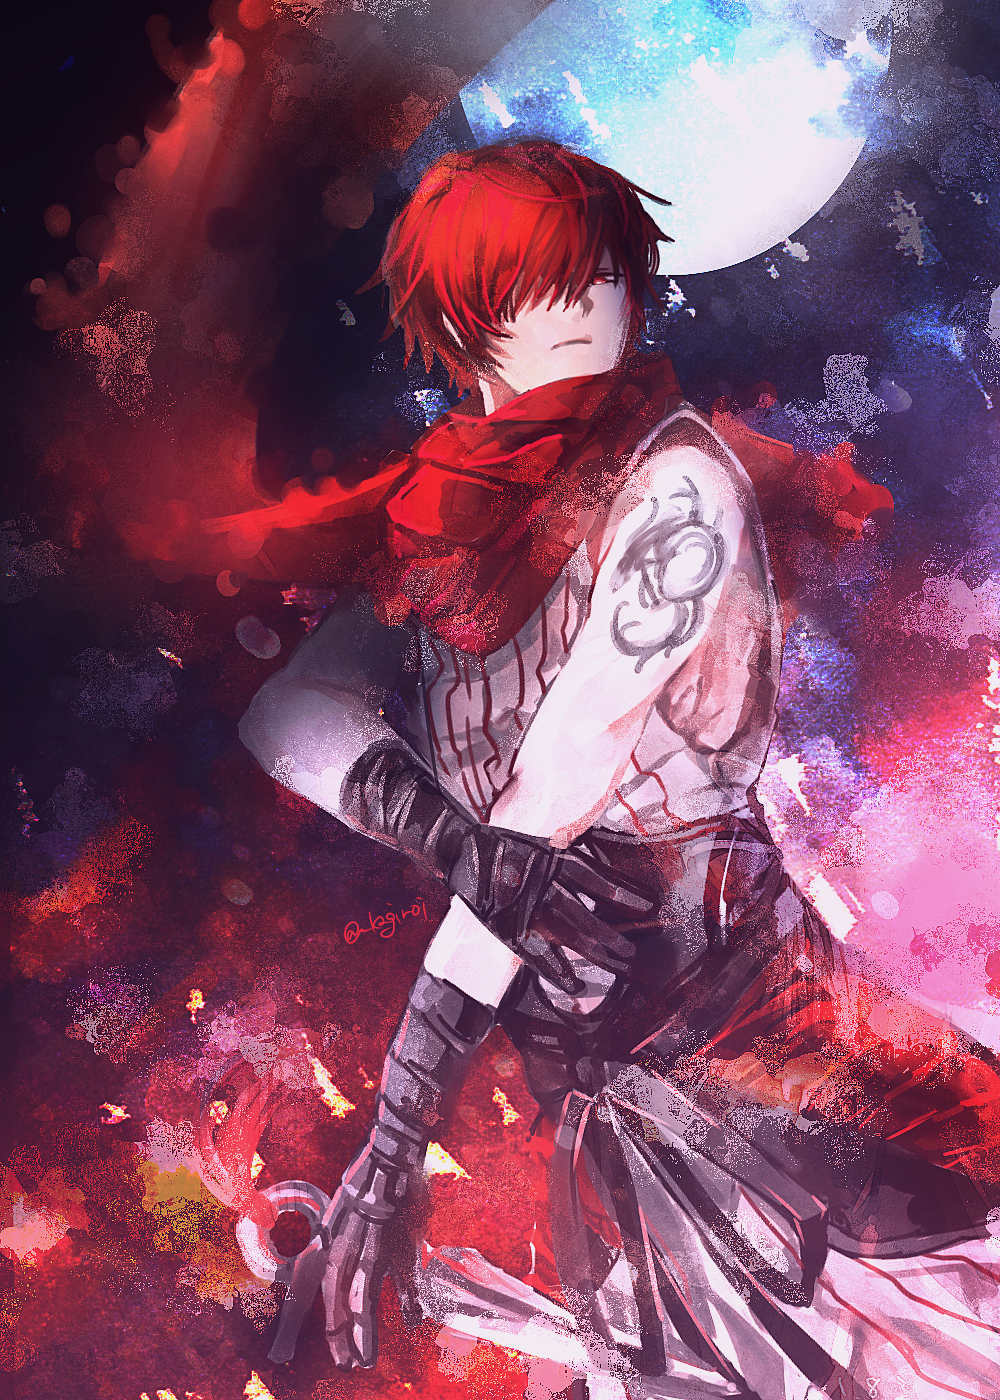 Pinterest Evil Anime Anime Red Hair Red Hair Anime Guy